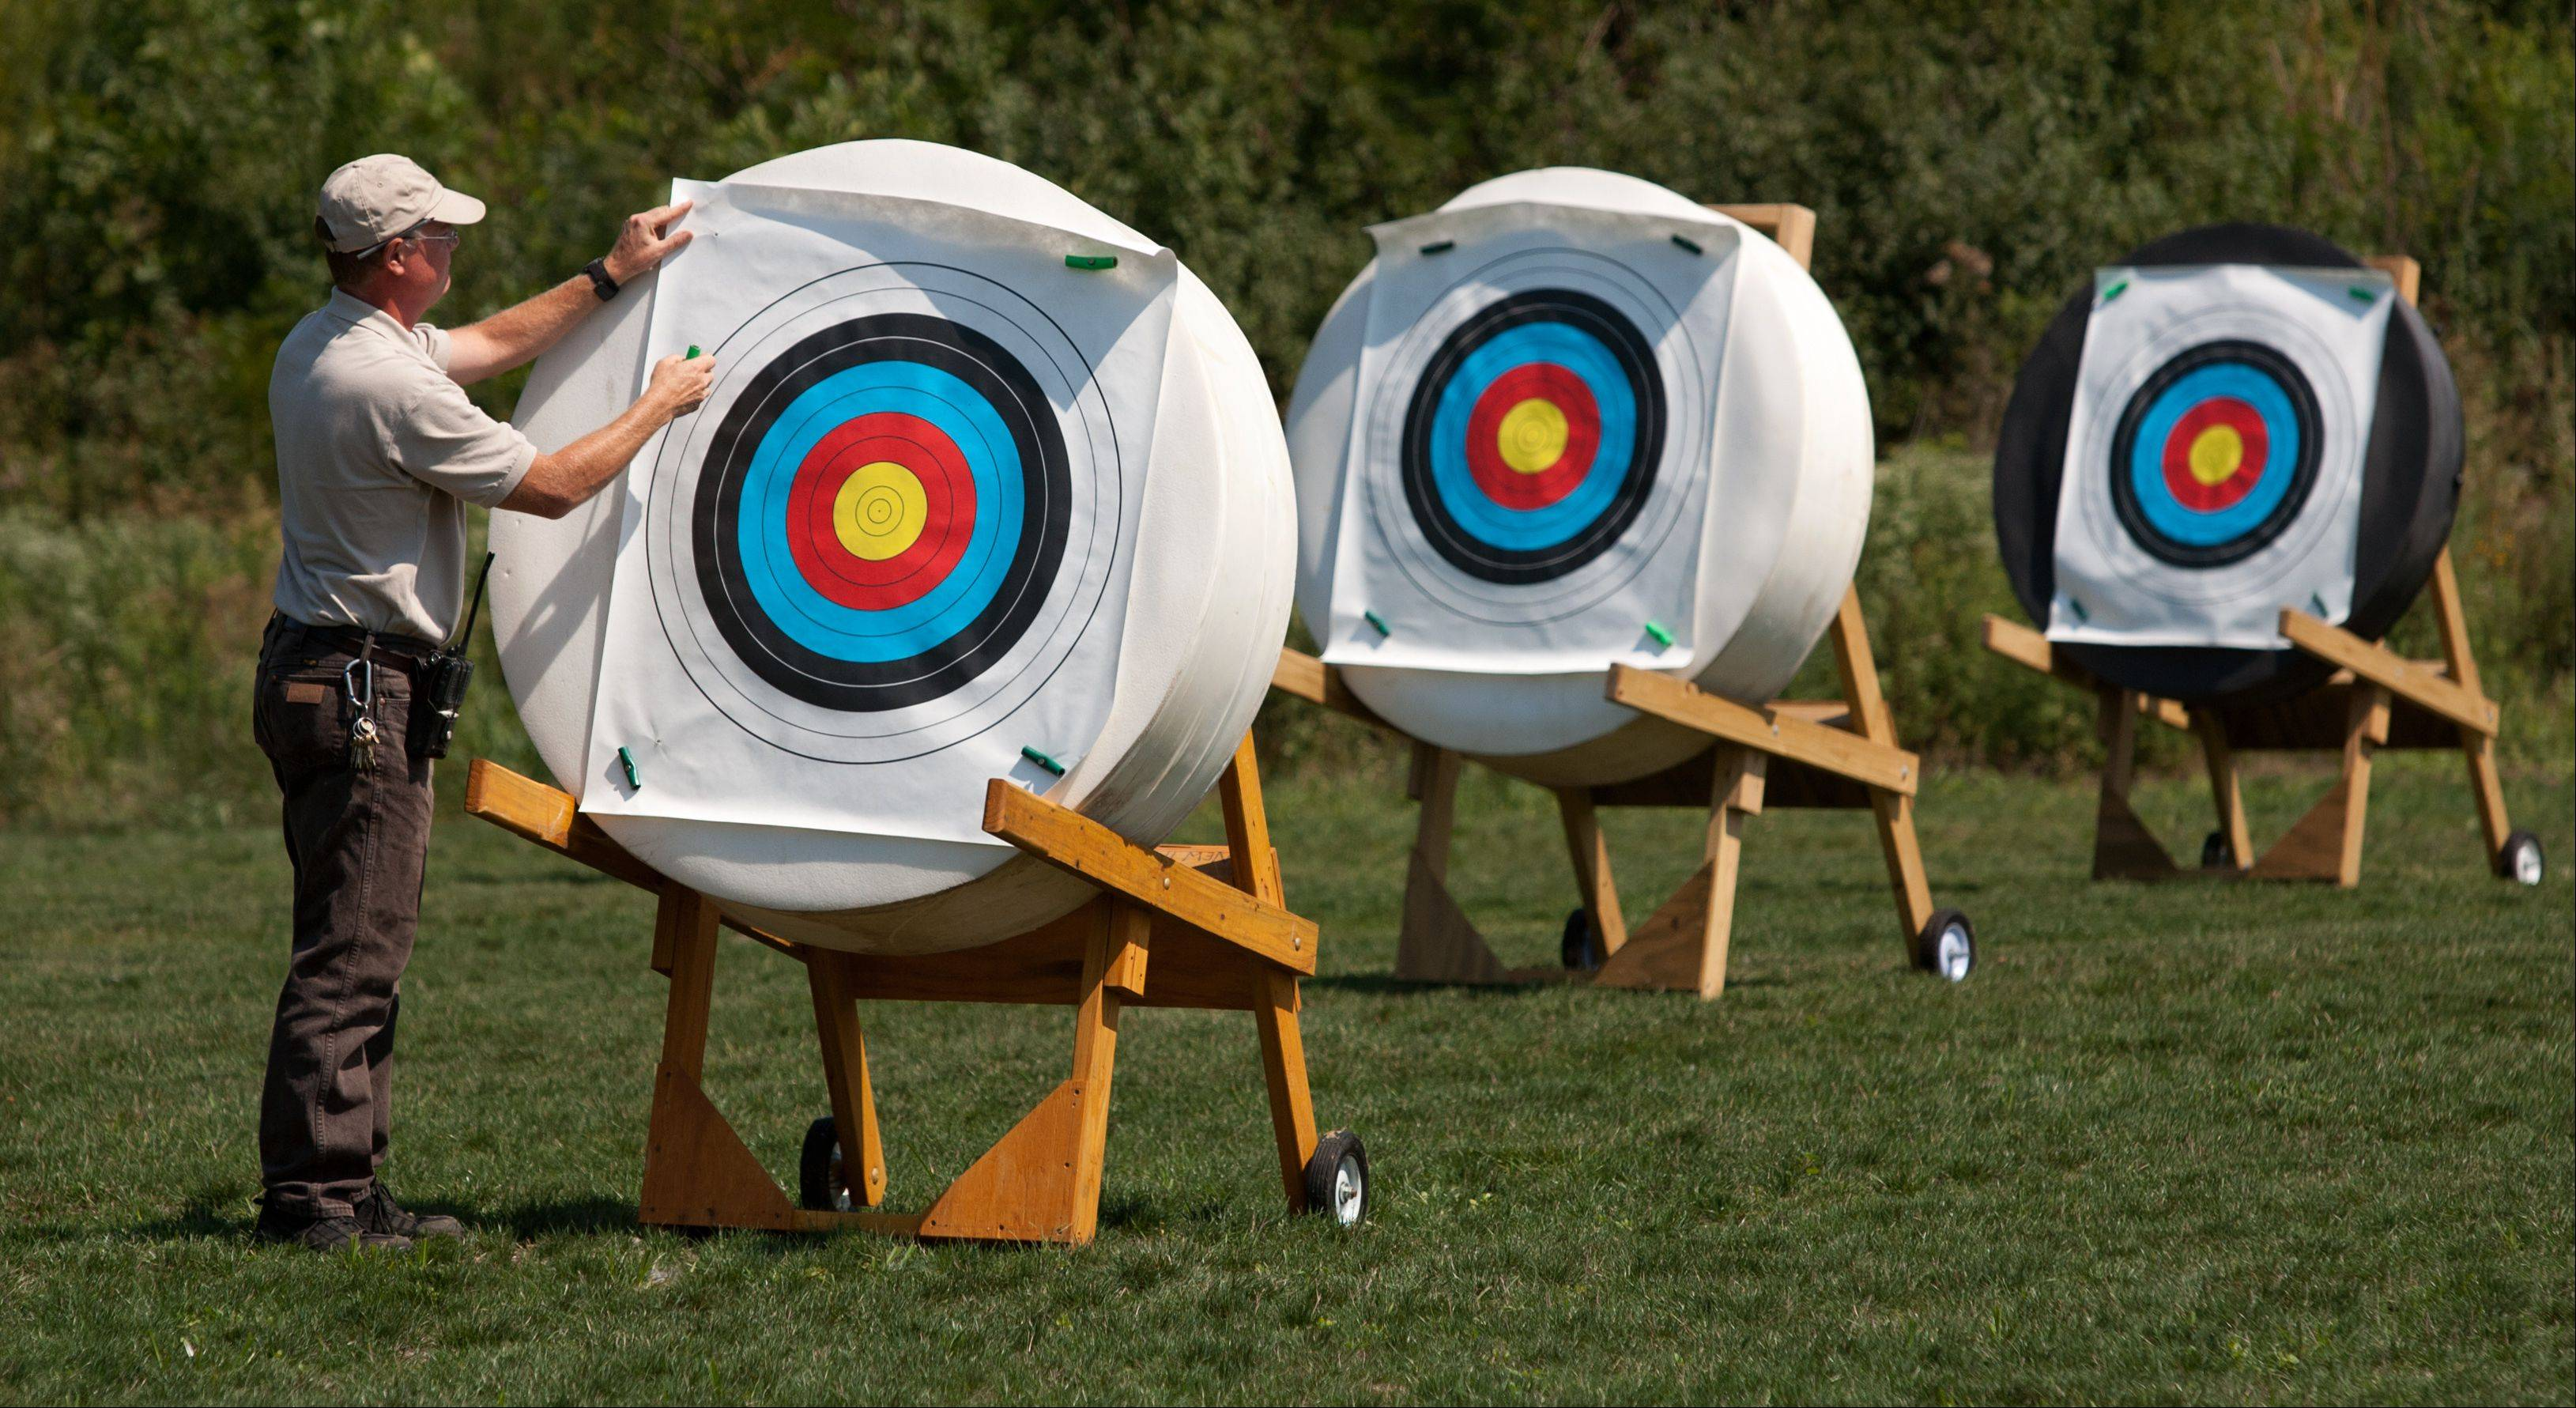 Blackwell to unveil centers for archery, urban stream studies